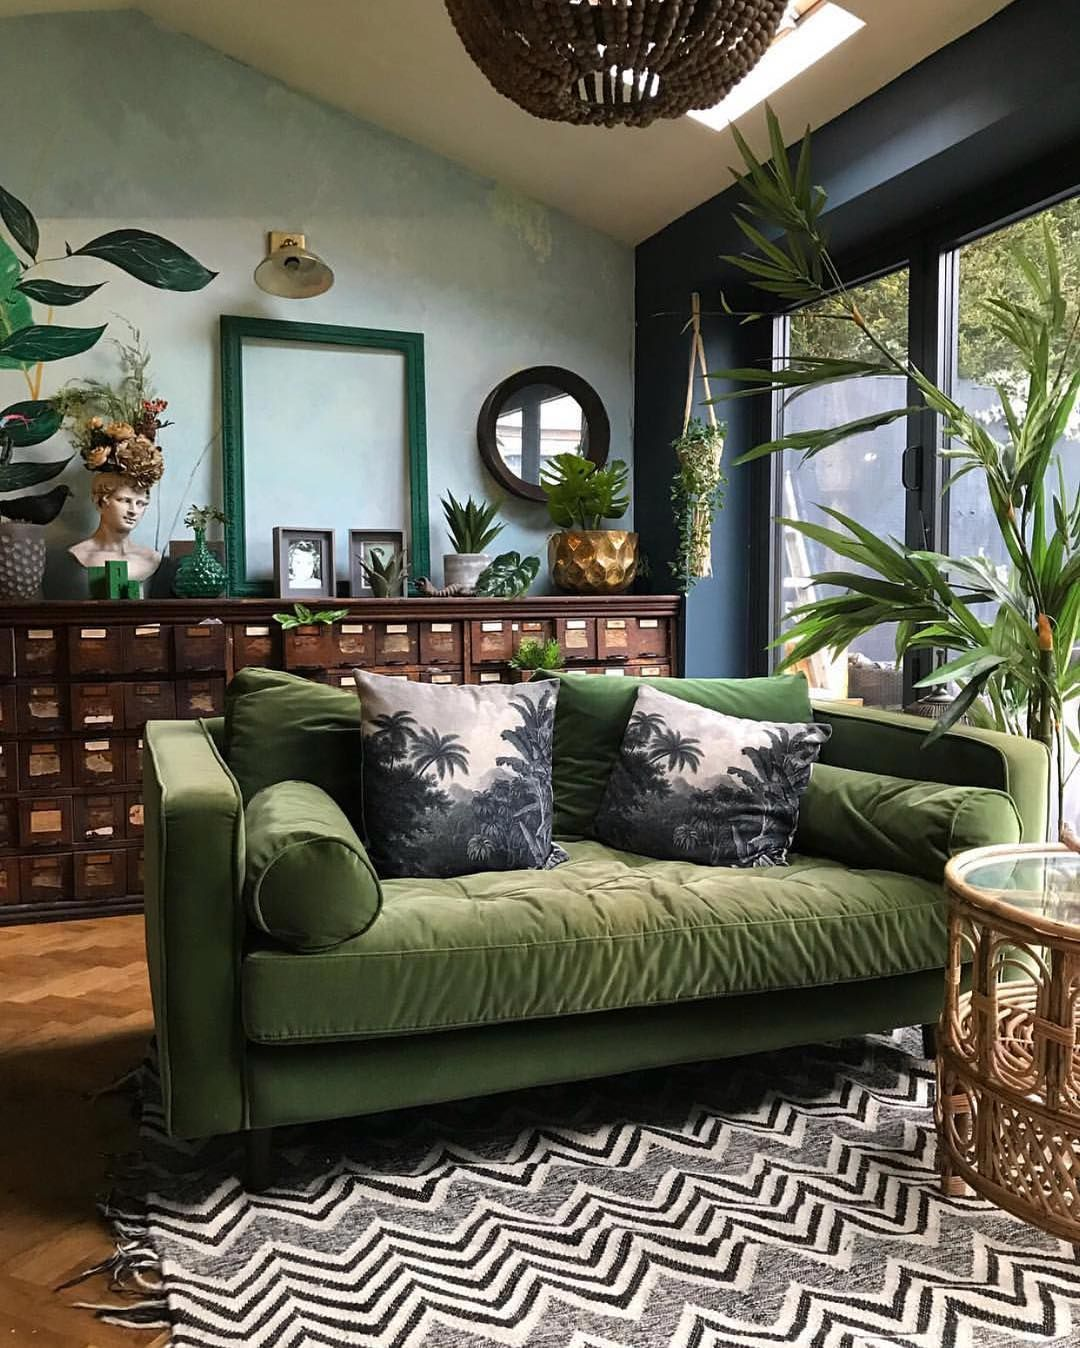 Green Sofa And Accents Plants And Vintage Library Chest In This Eclectic Living Room Eclectic Living Room Eclectic Home Home Interior Design